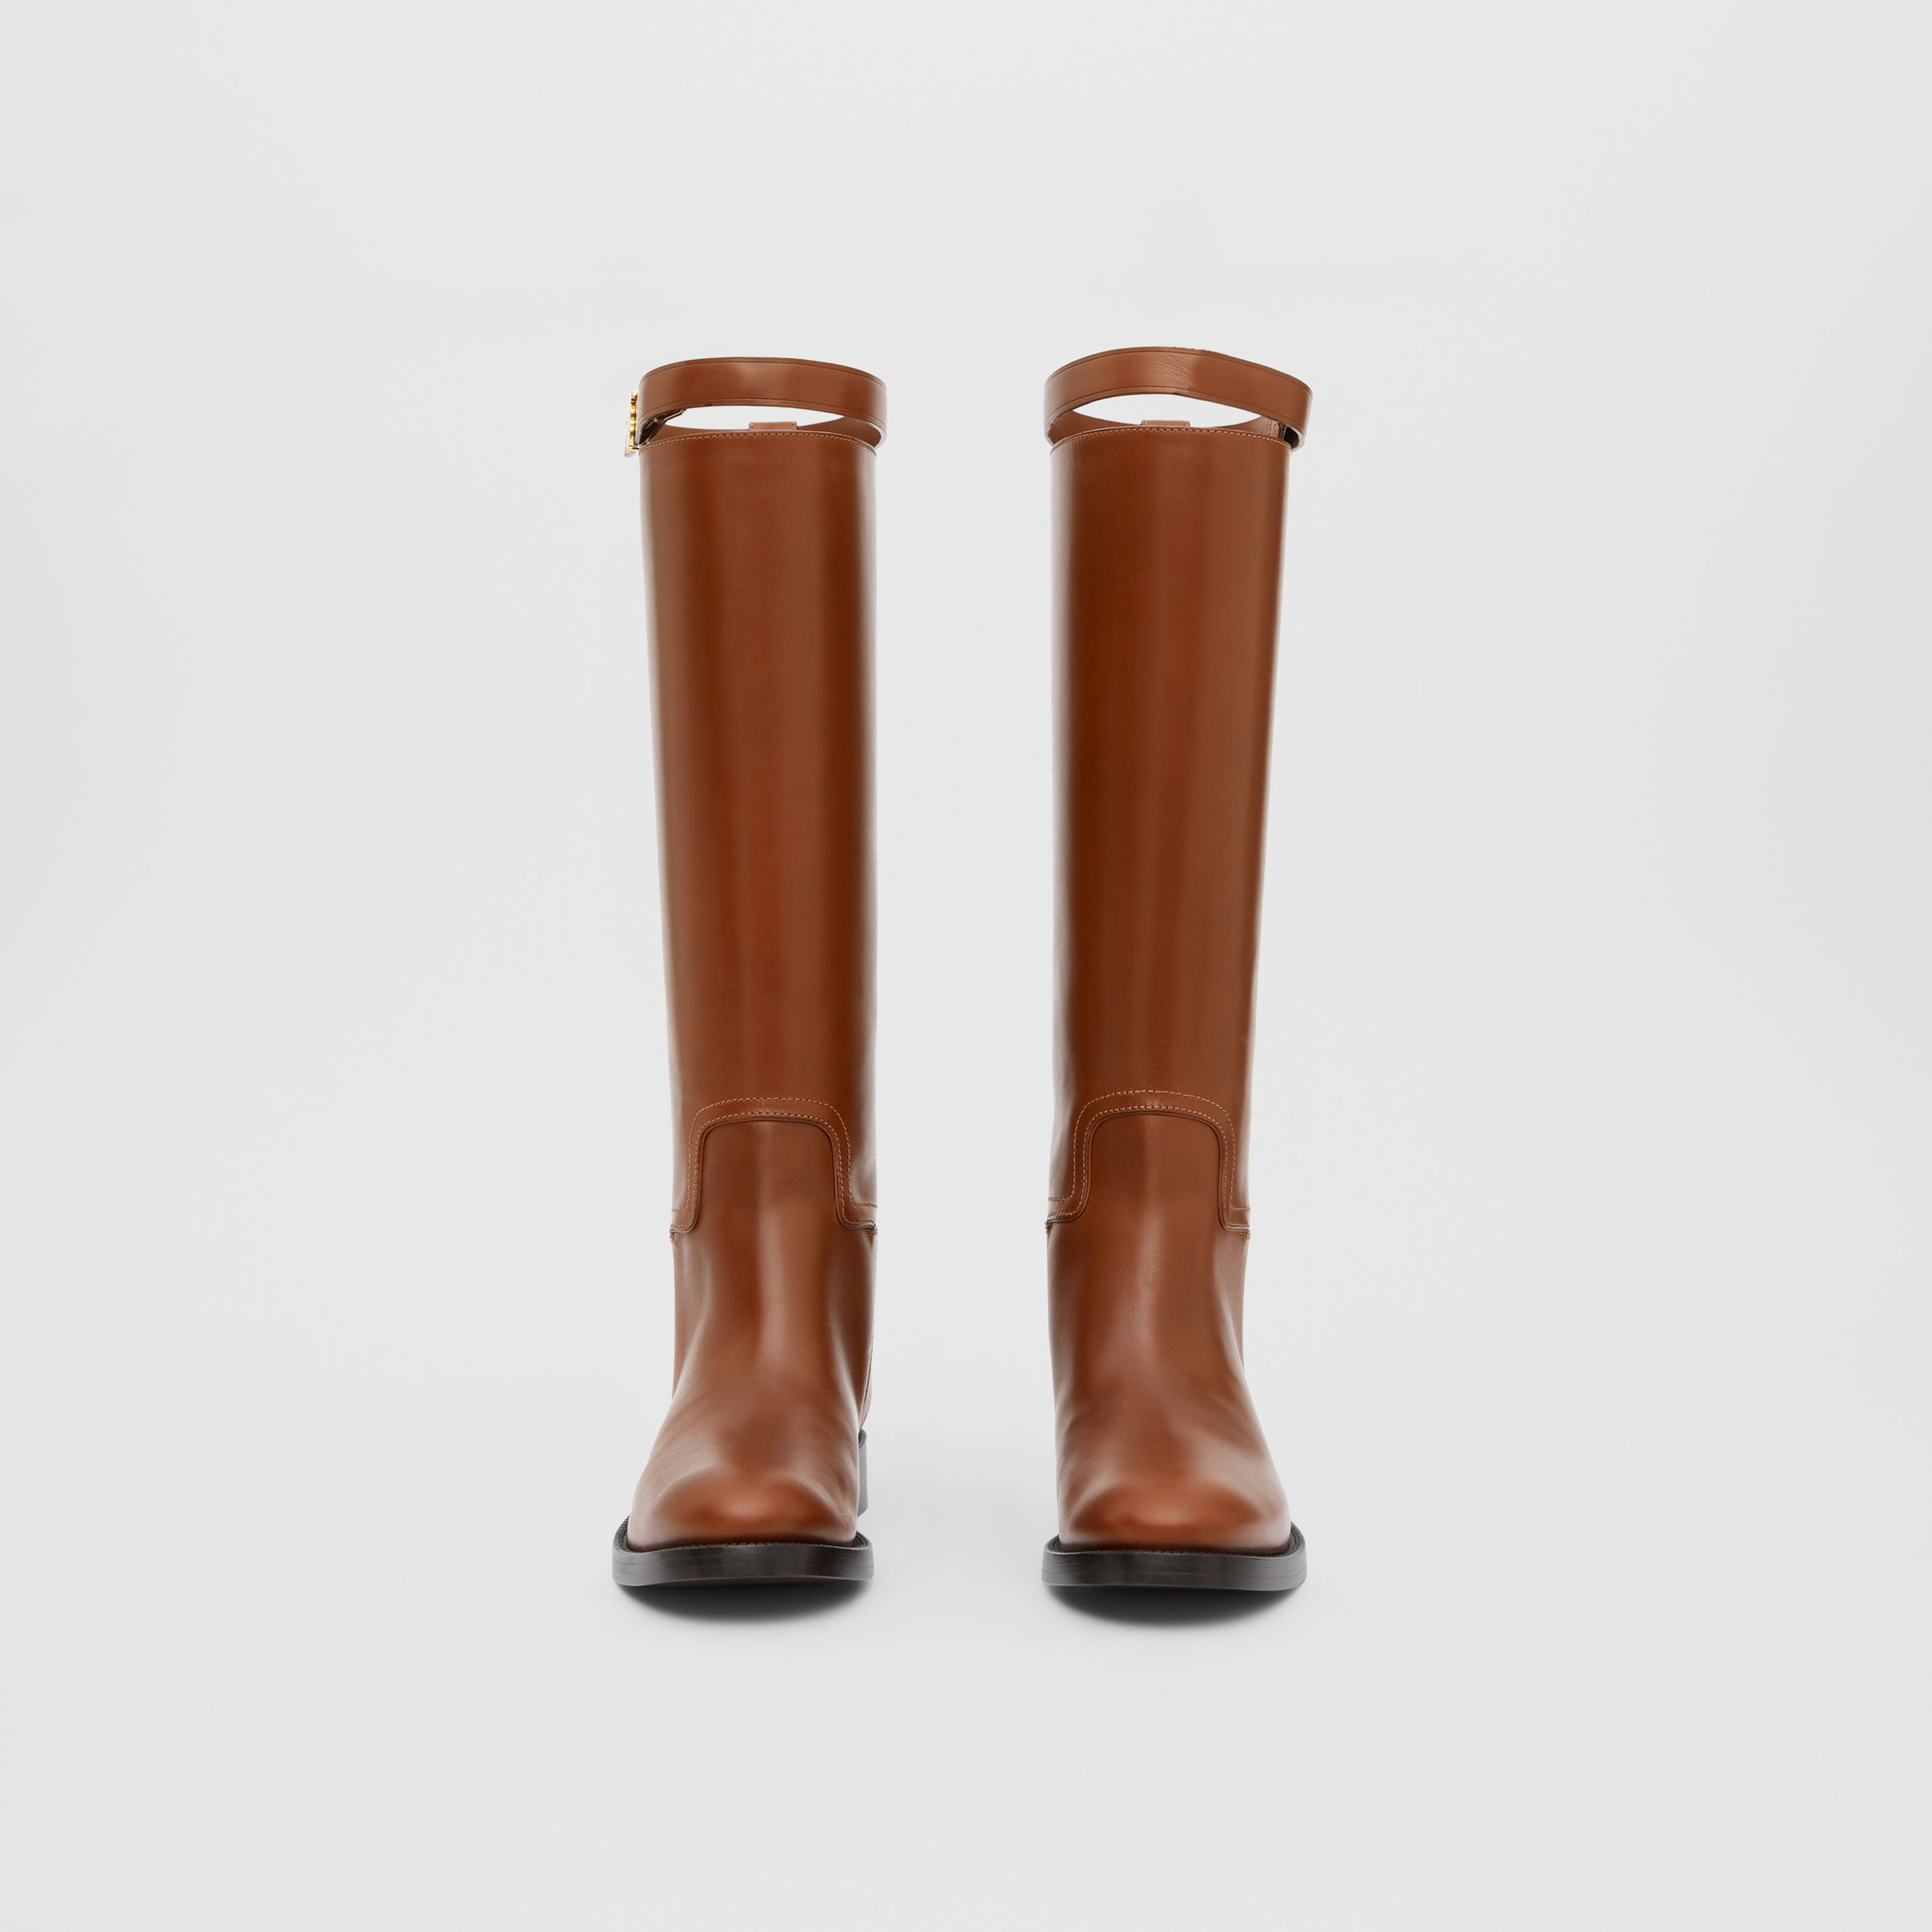 Monogram Motif Leather Knee-high Boots in Tan - Women | Burberry - 4